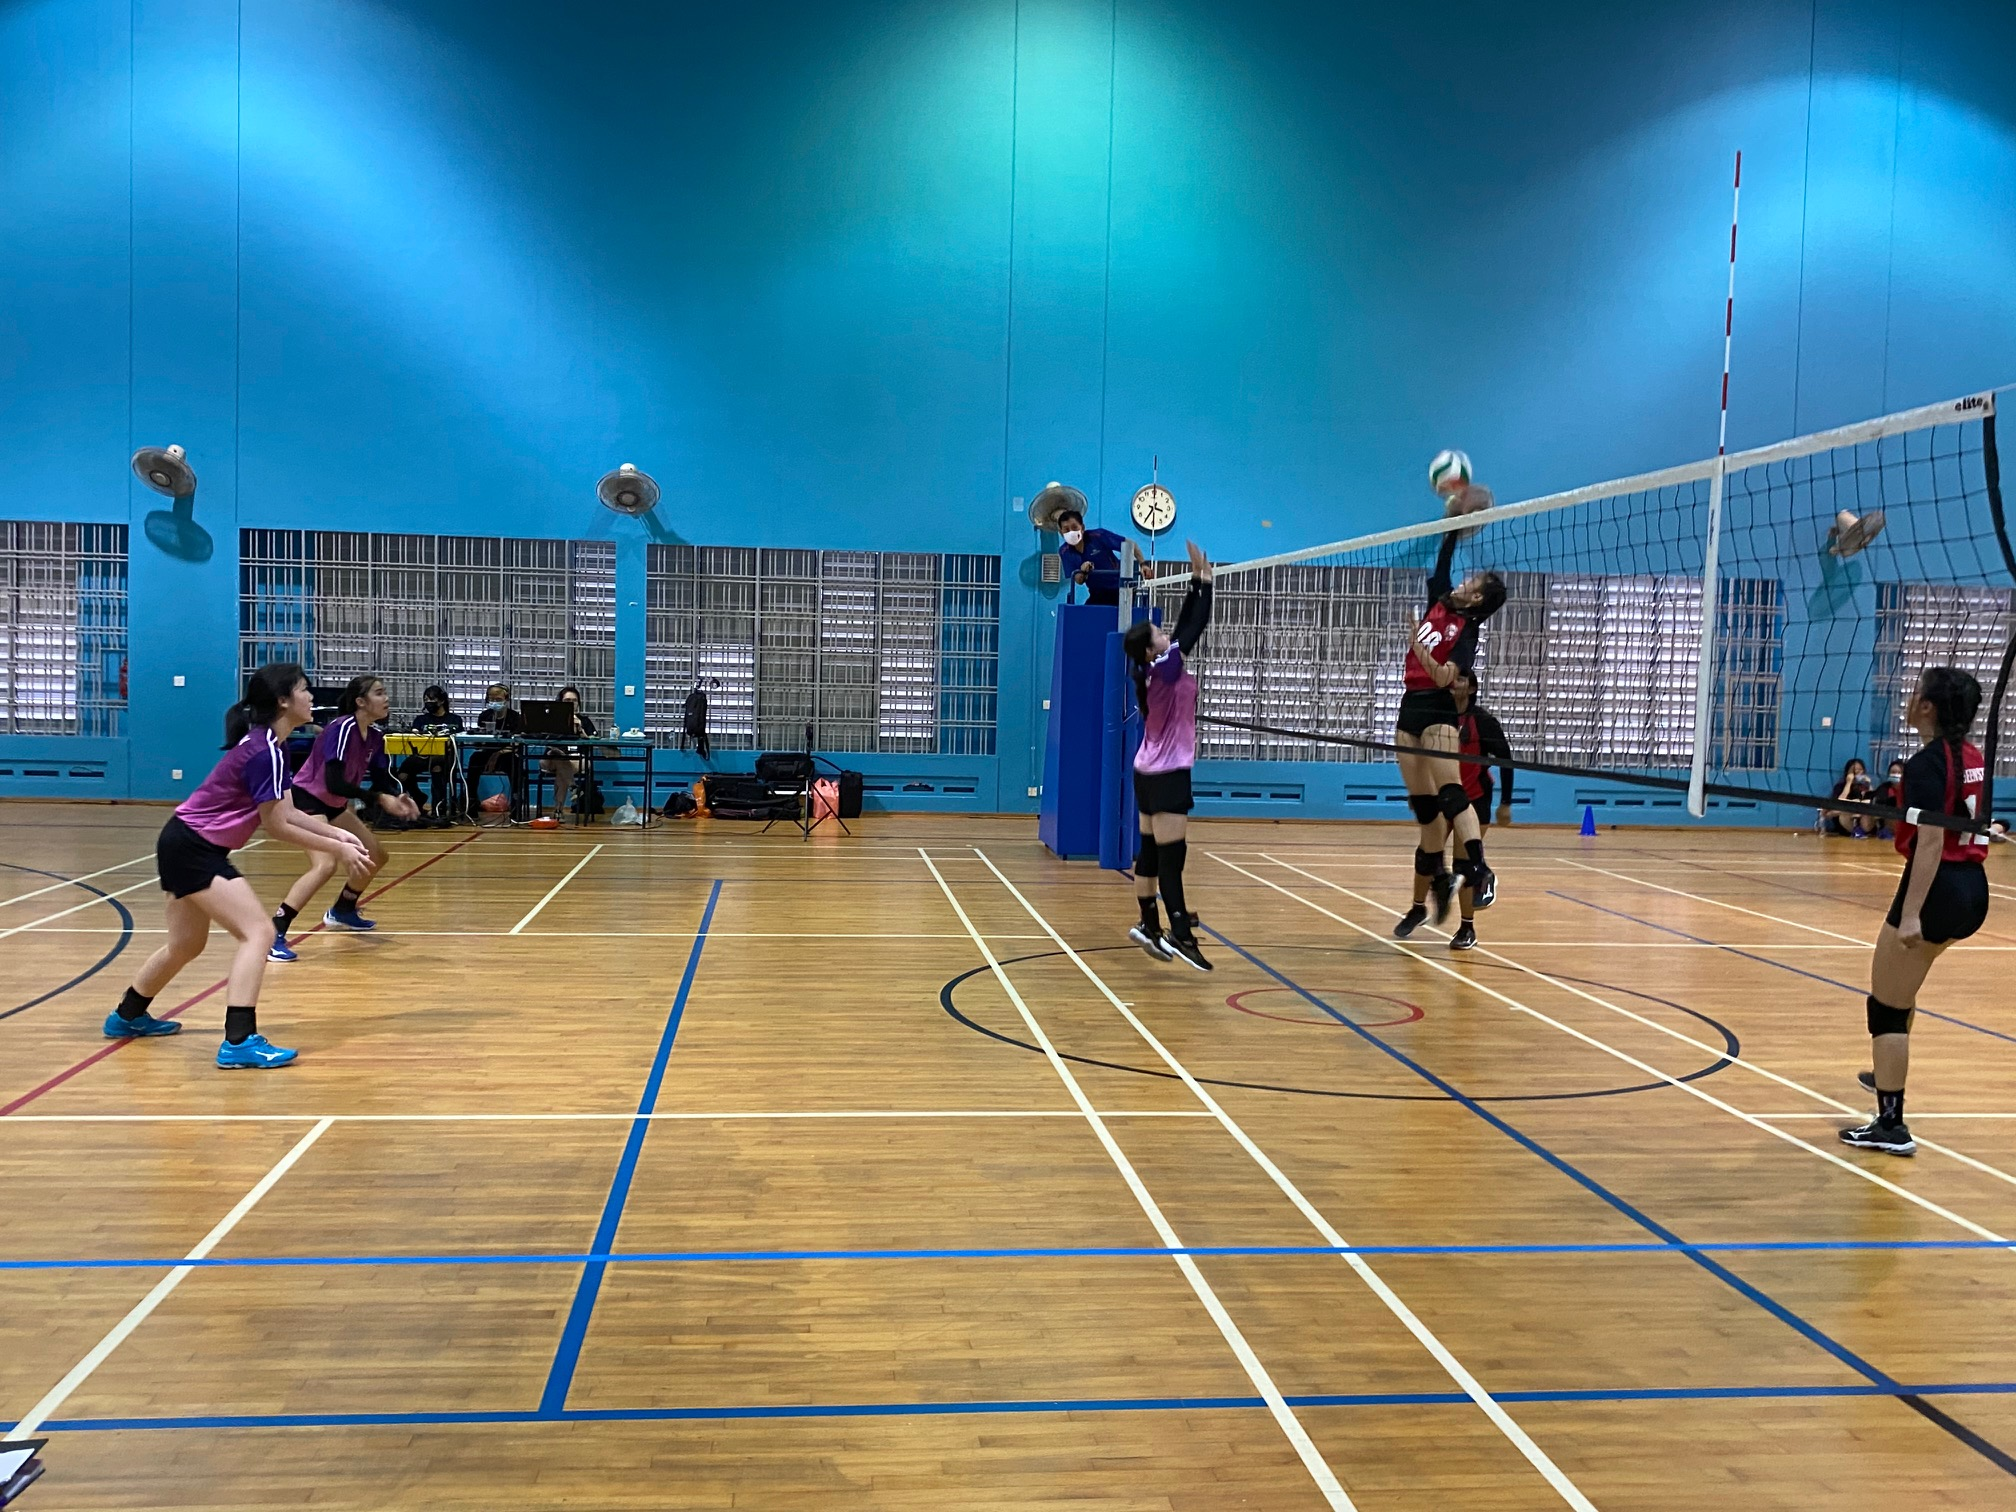 NSG South Zone B Div girls volleyball final - Queenstown (red) v Queensway (purple) 2-1